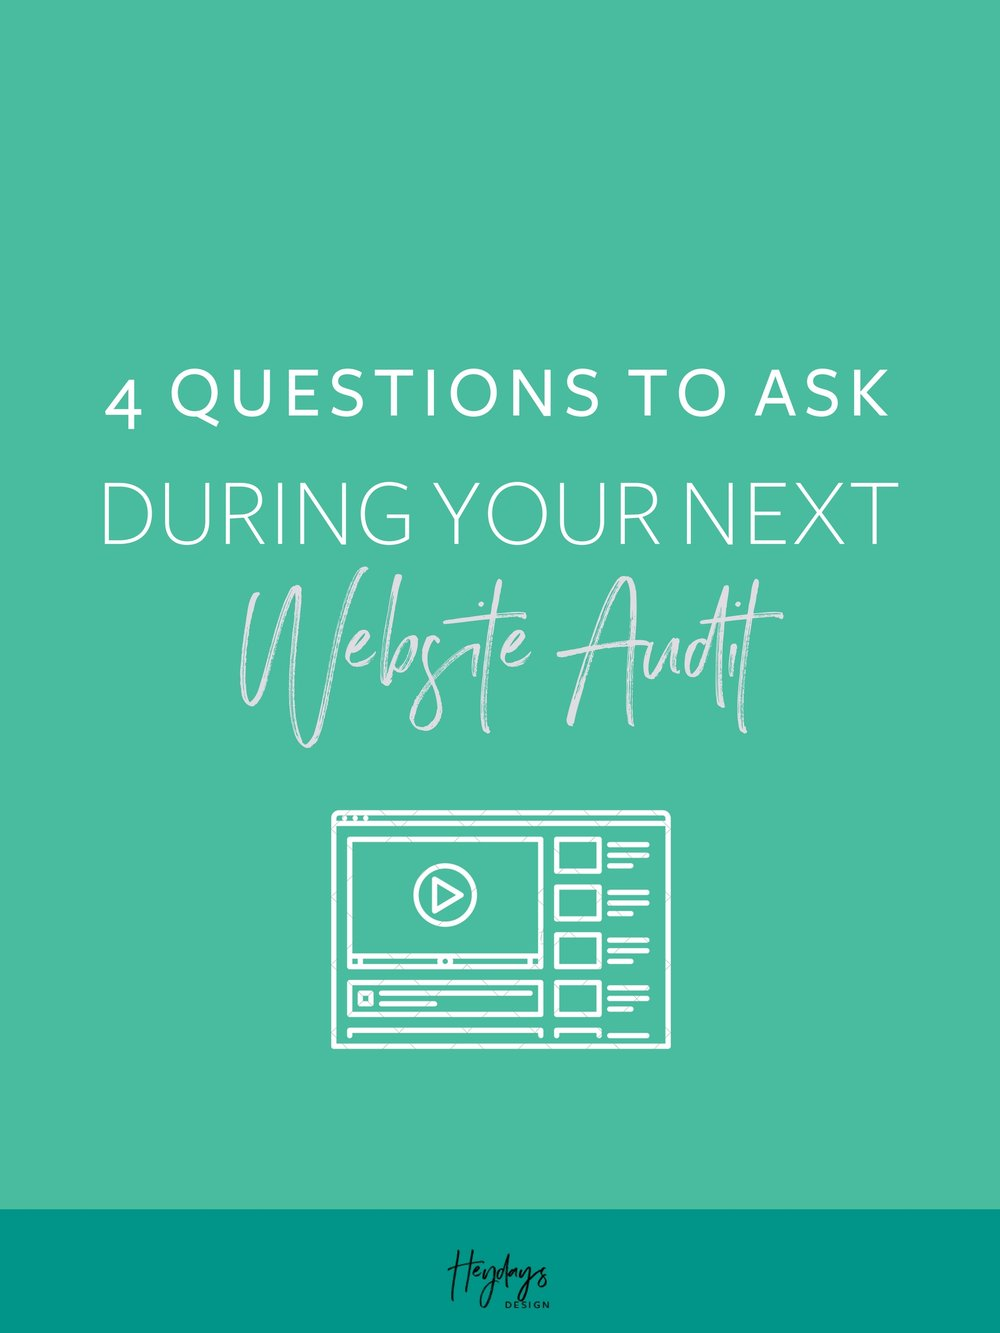 4 Questions to Ask Yourself During a Website Audit l Heydays Design